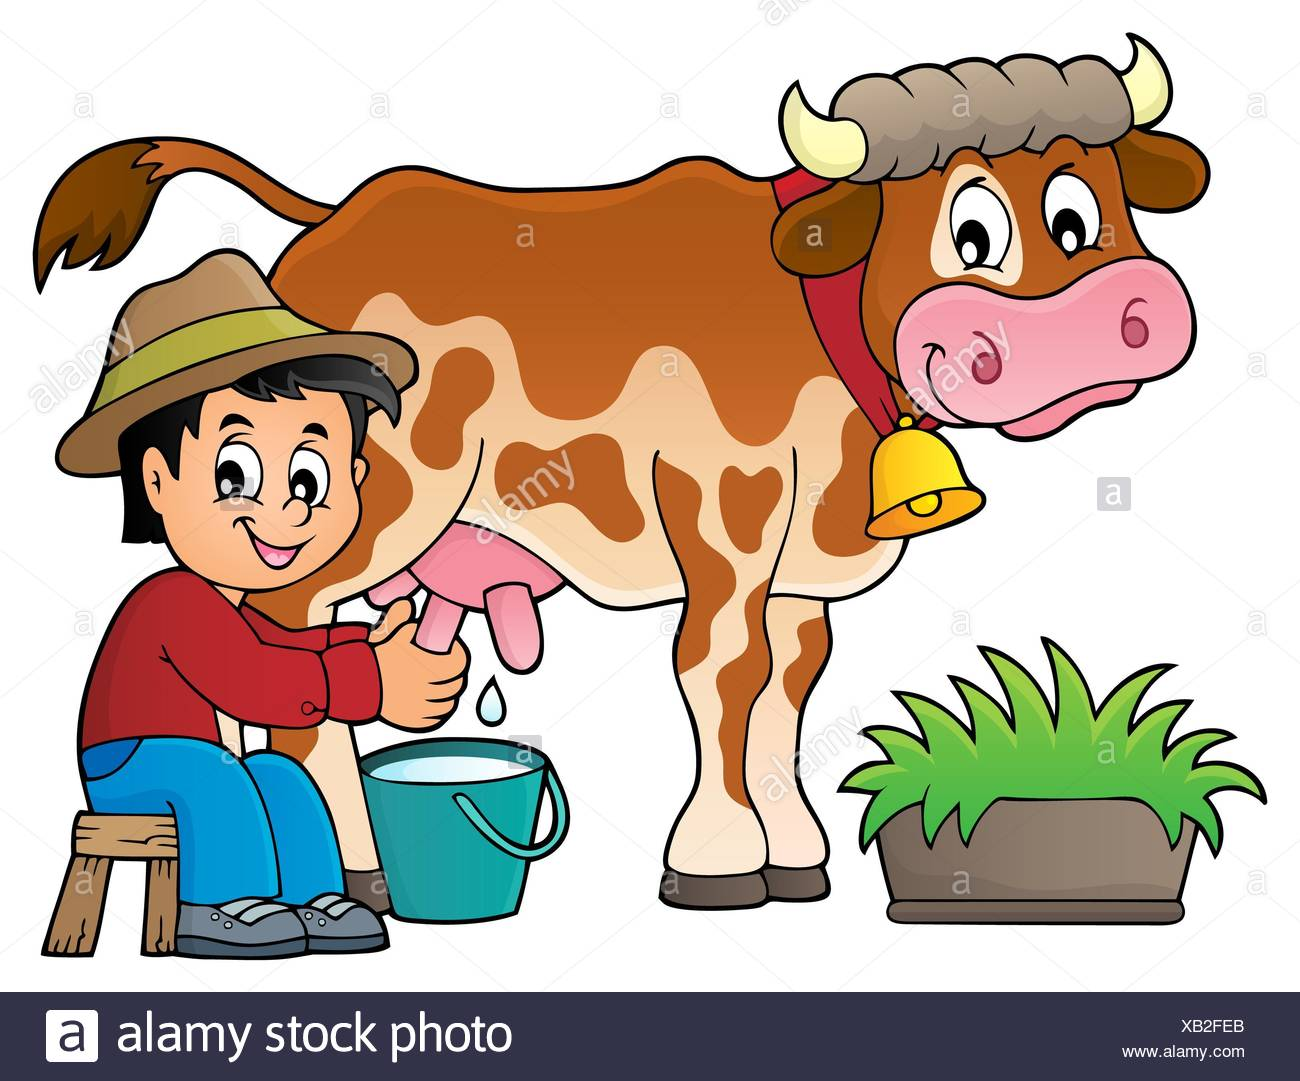 Farmer milking cow image 1 Stock Photo: 282183171.